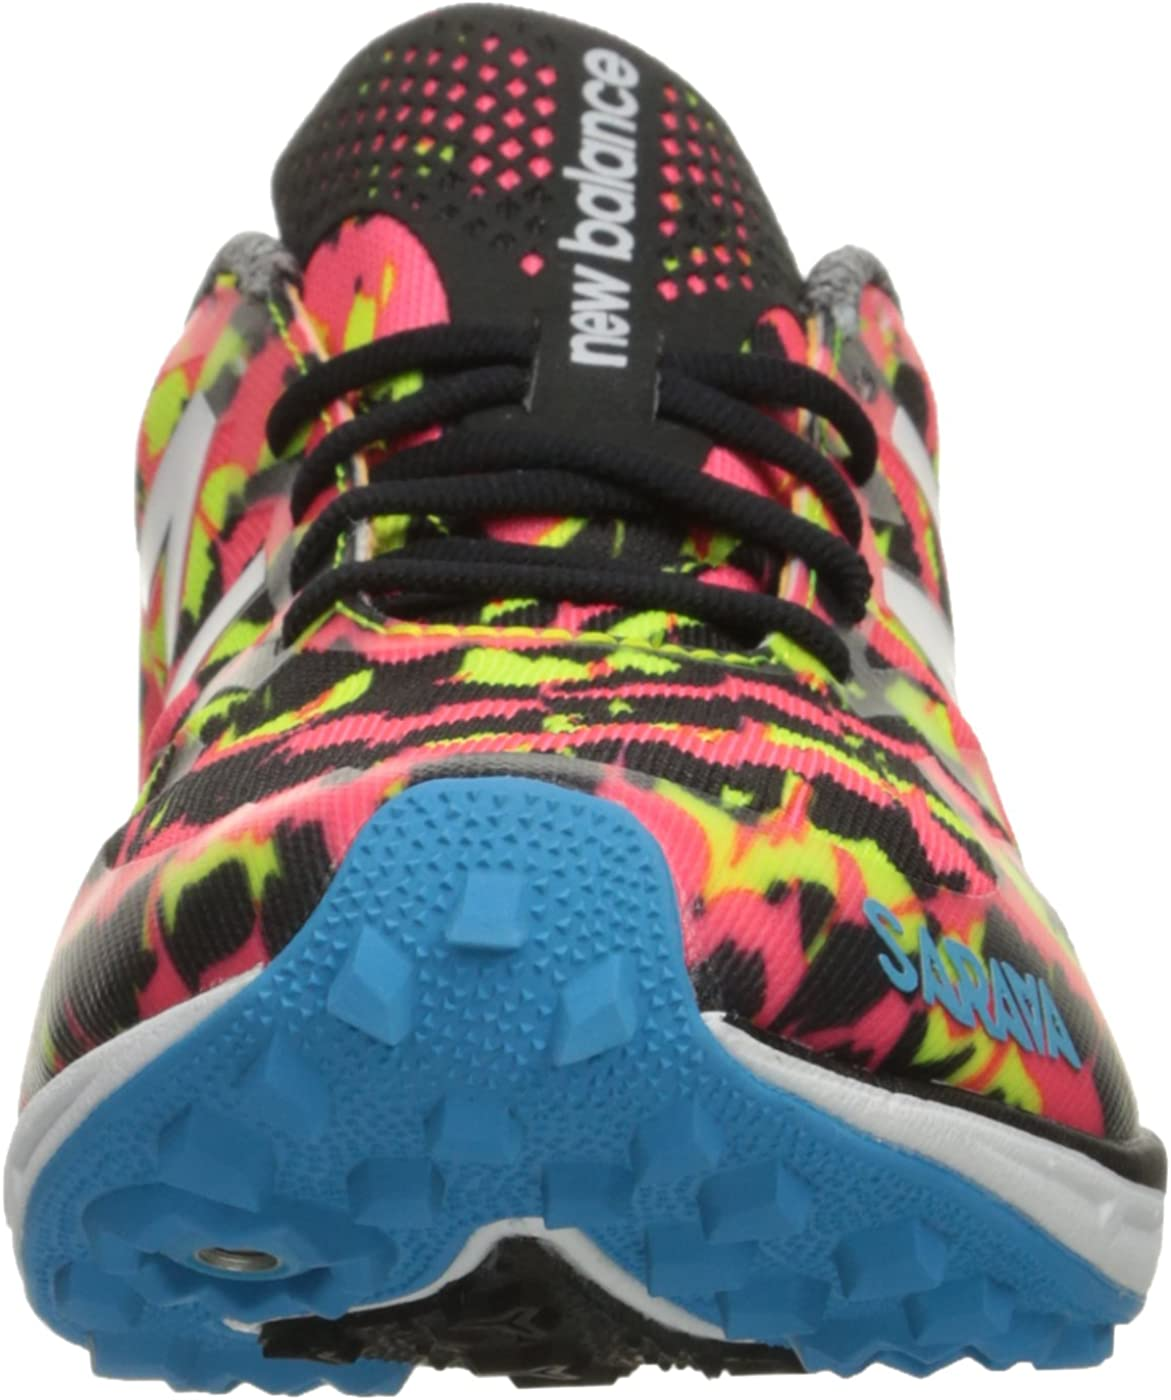 New Balance Women s 700v4 Track Spike Running Shoe